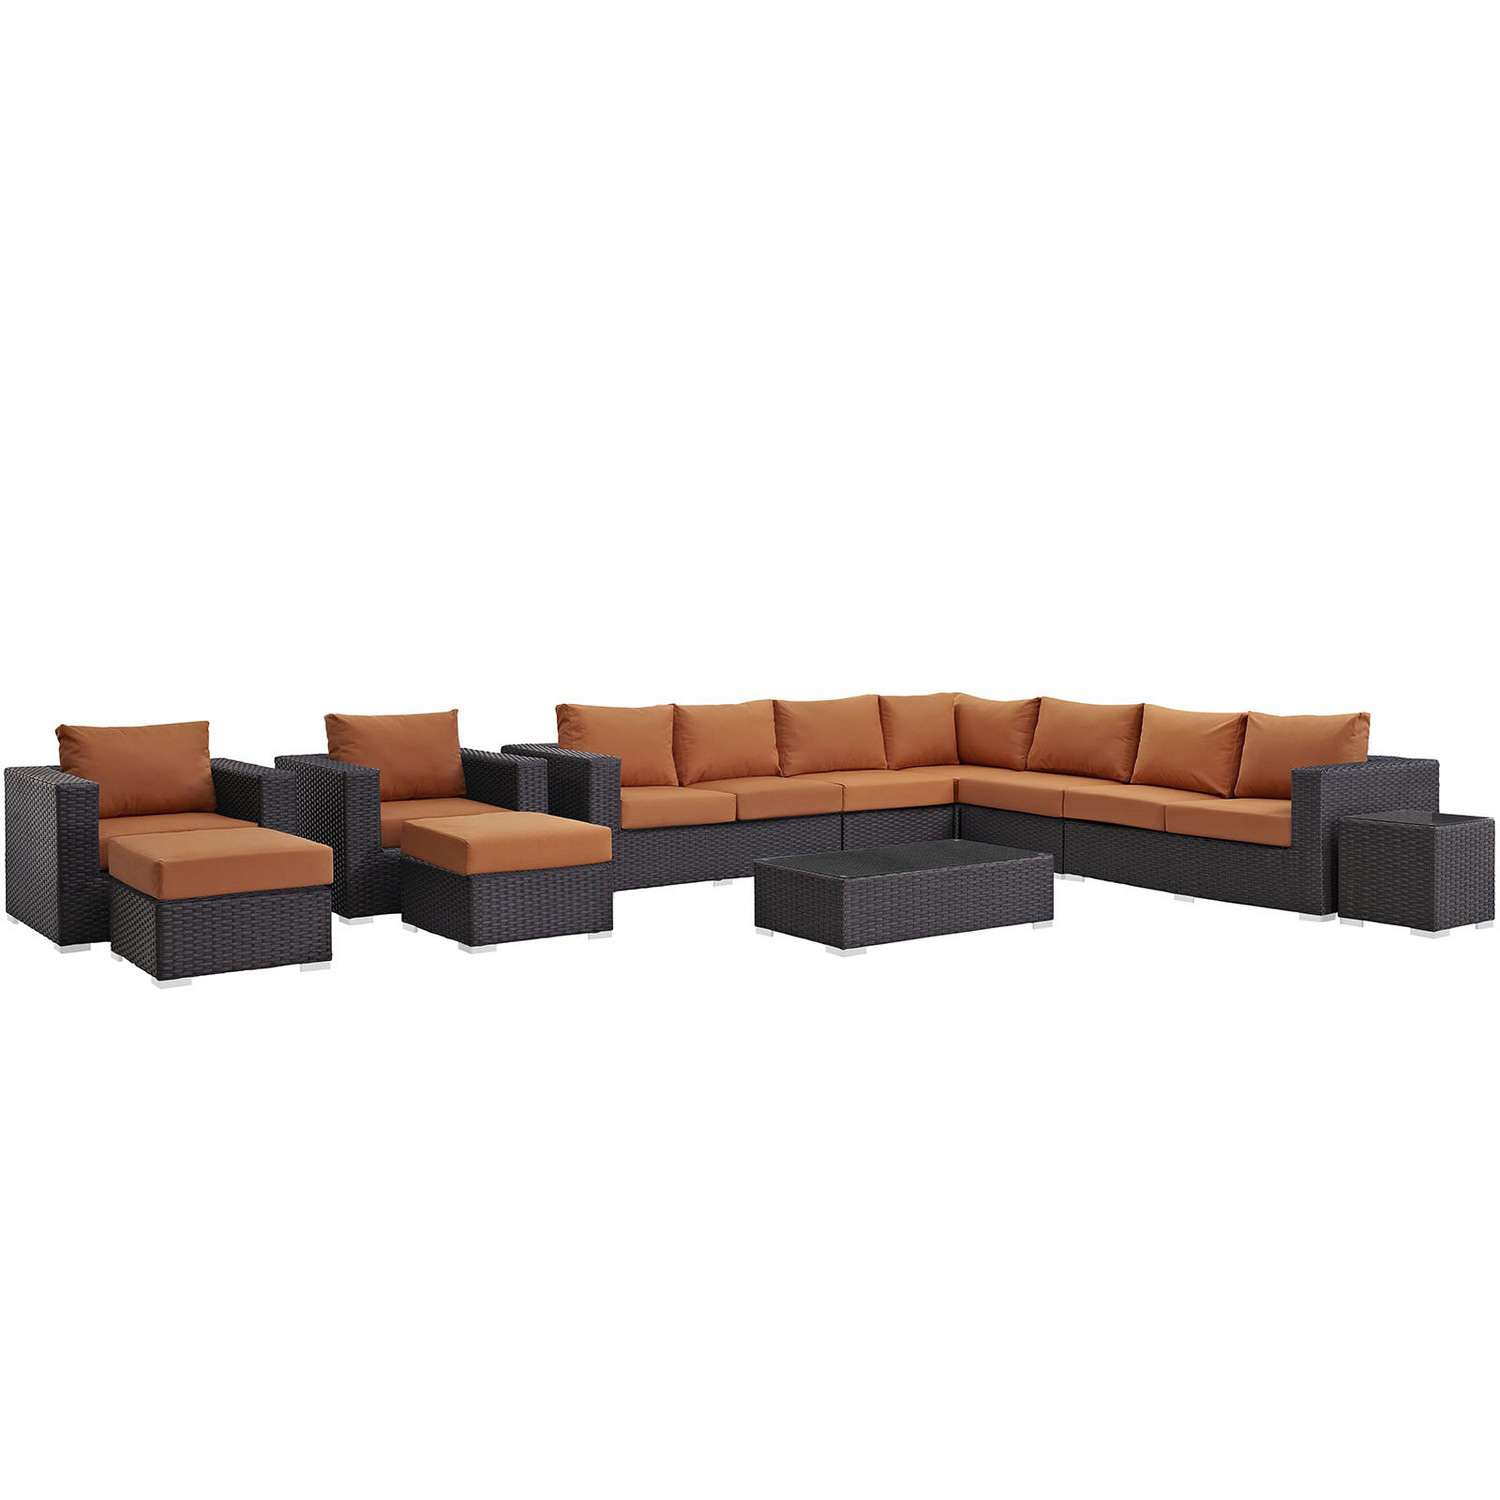 Modway Sojourn 11 Piece Outdoor Patio Sunbrella Sectional Set - Canvas Tuscan